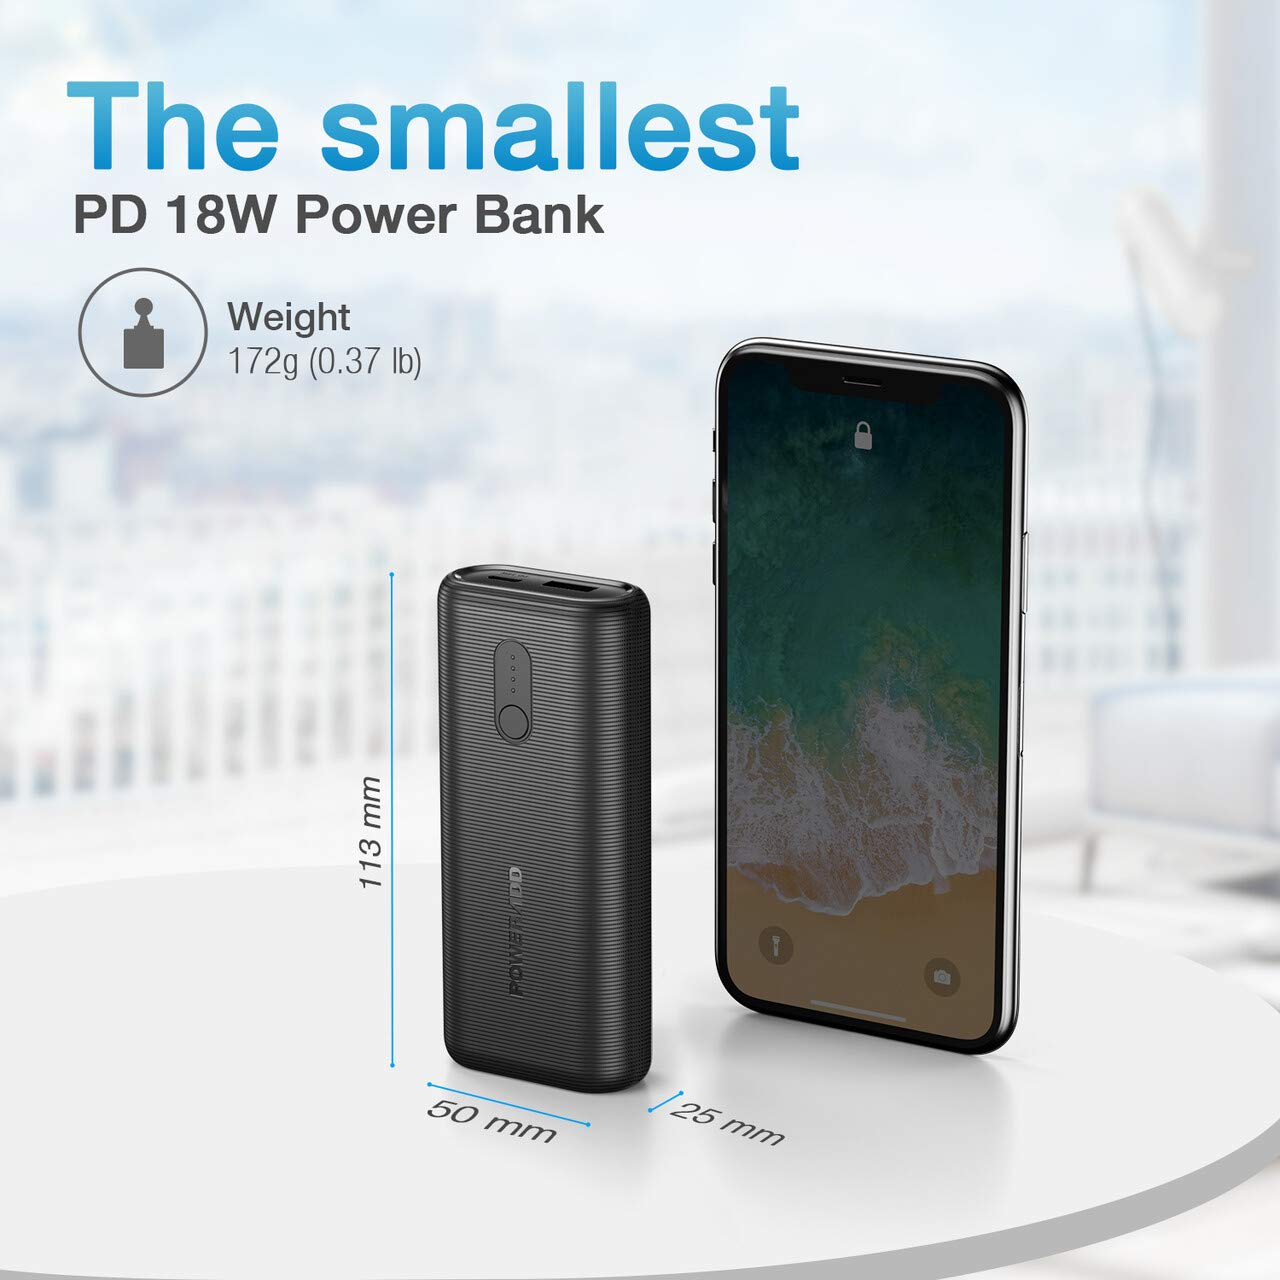 POWERADD EnergyCell Ⅱ 10000 Portable Charger PD 18W,10000mAh Portable Charger USB-C Power Delivery (18W) Power Bank for iPhone 11/11 Pro / 11 Pro Max / 8 / X/XS, Samsung S10, Pixel 3 / 3XL, and More